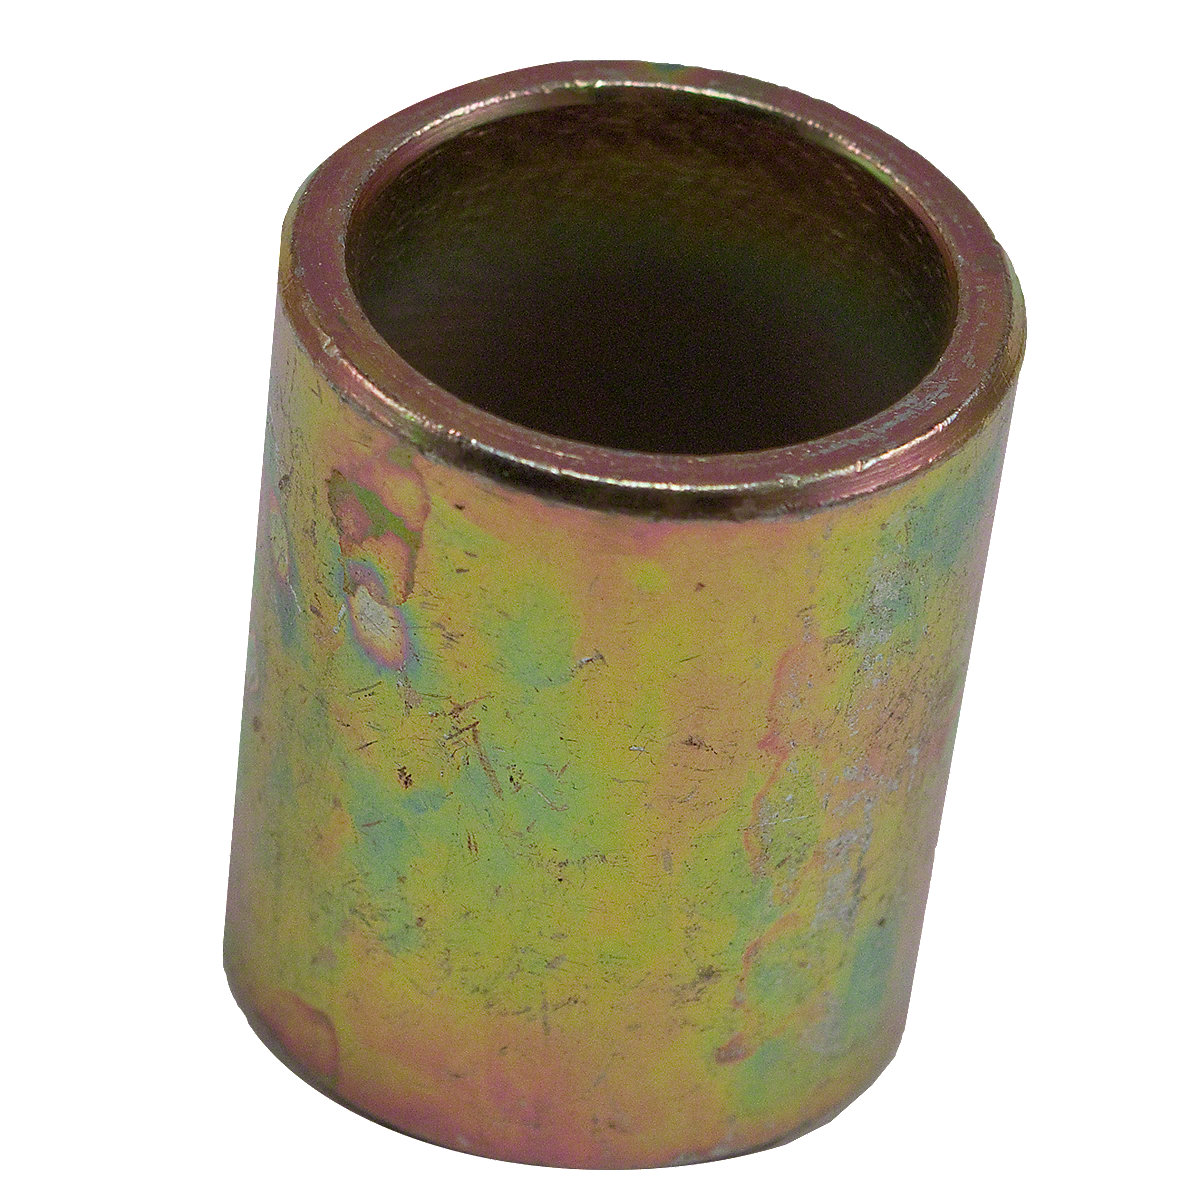 ABC14333 Pt Lift Arm Reducer Bushing, Category 2 To Category 1)